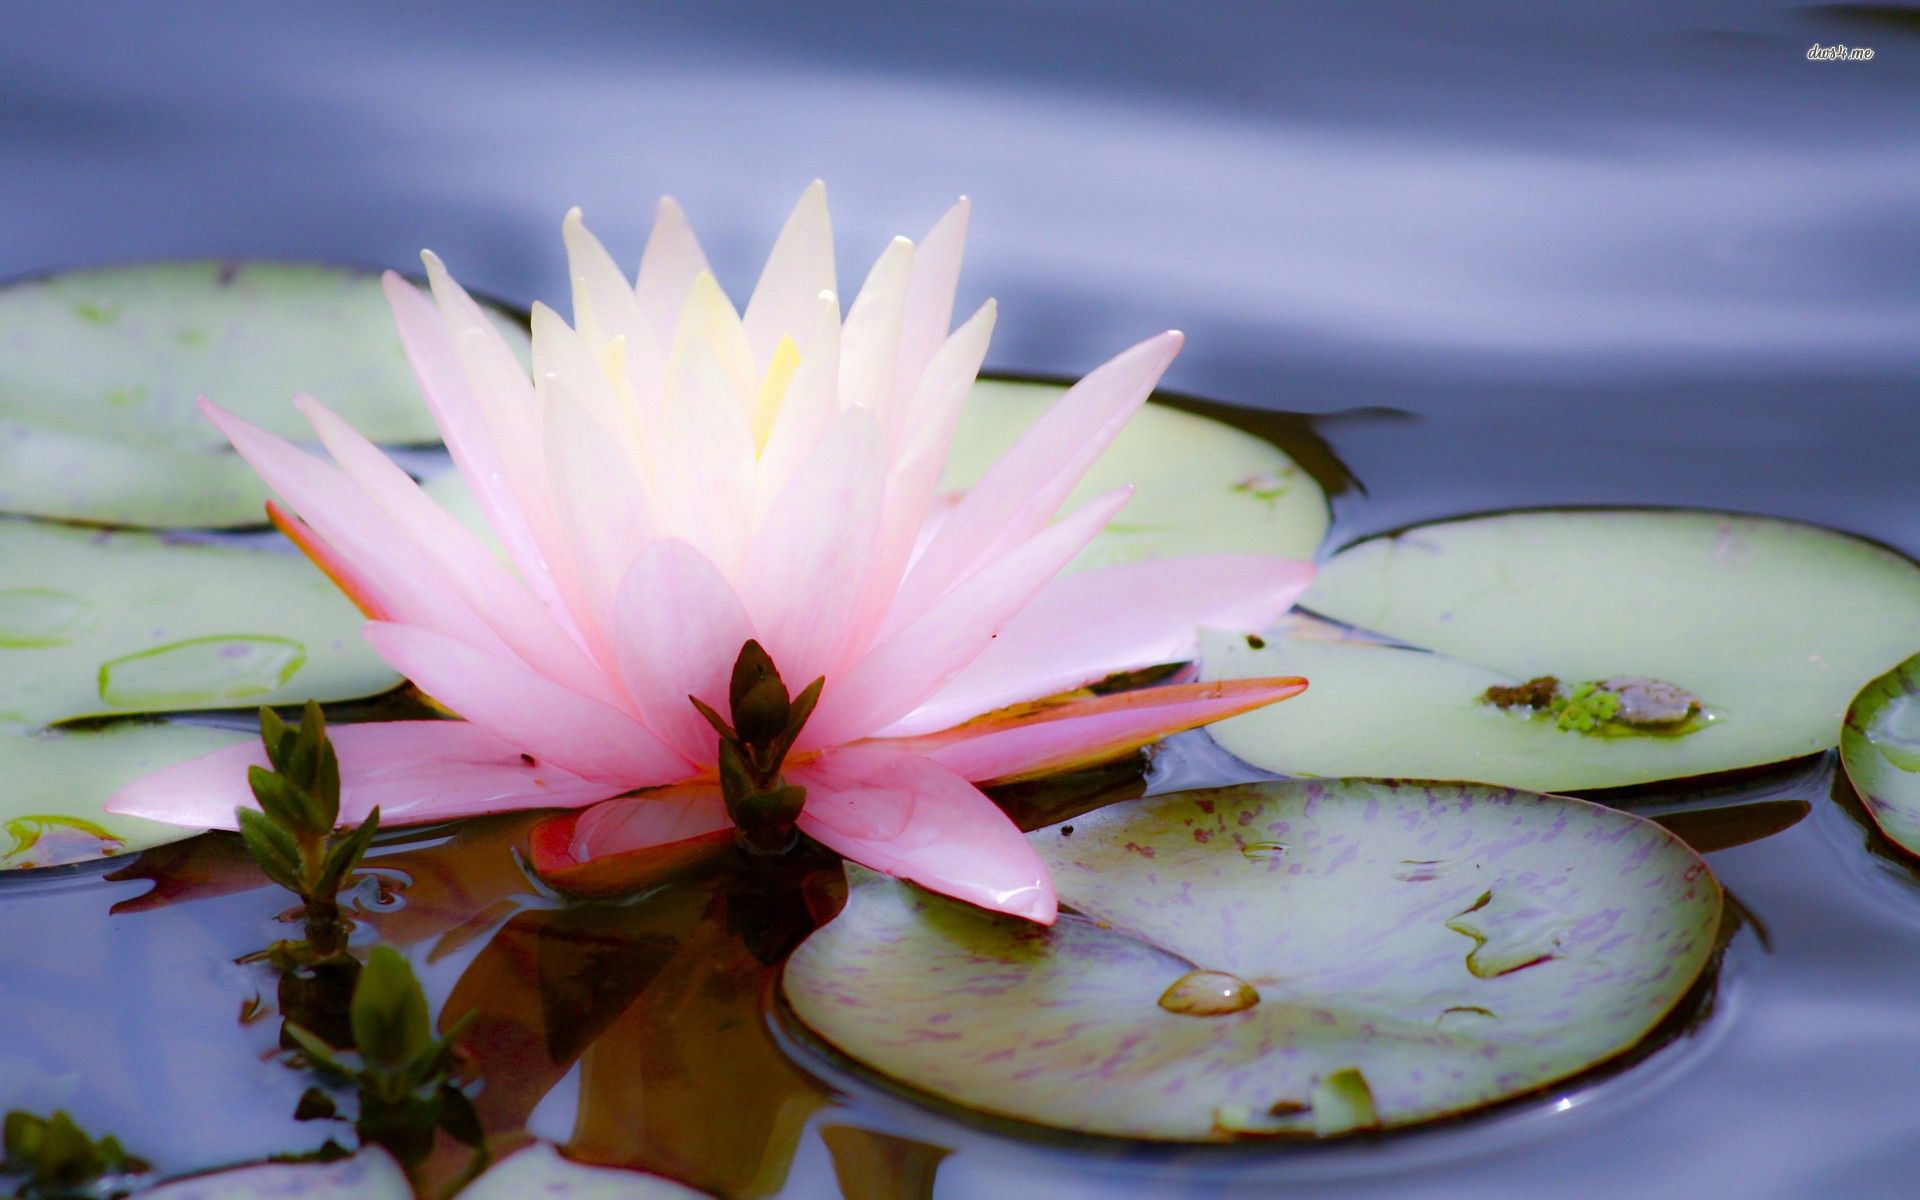 Water lilies Wallpapers HD Desktop Backgrounds Images and